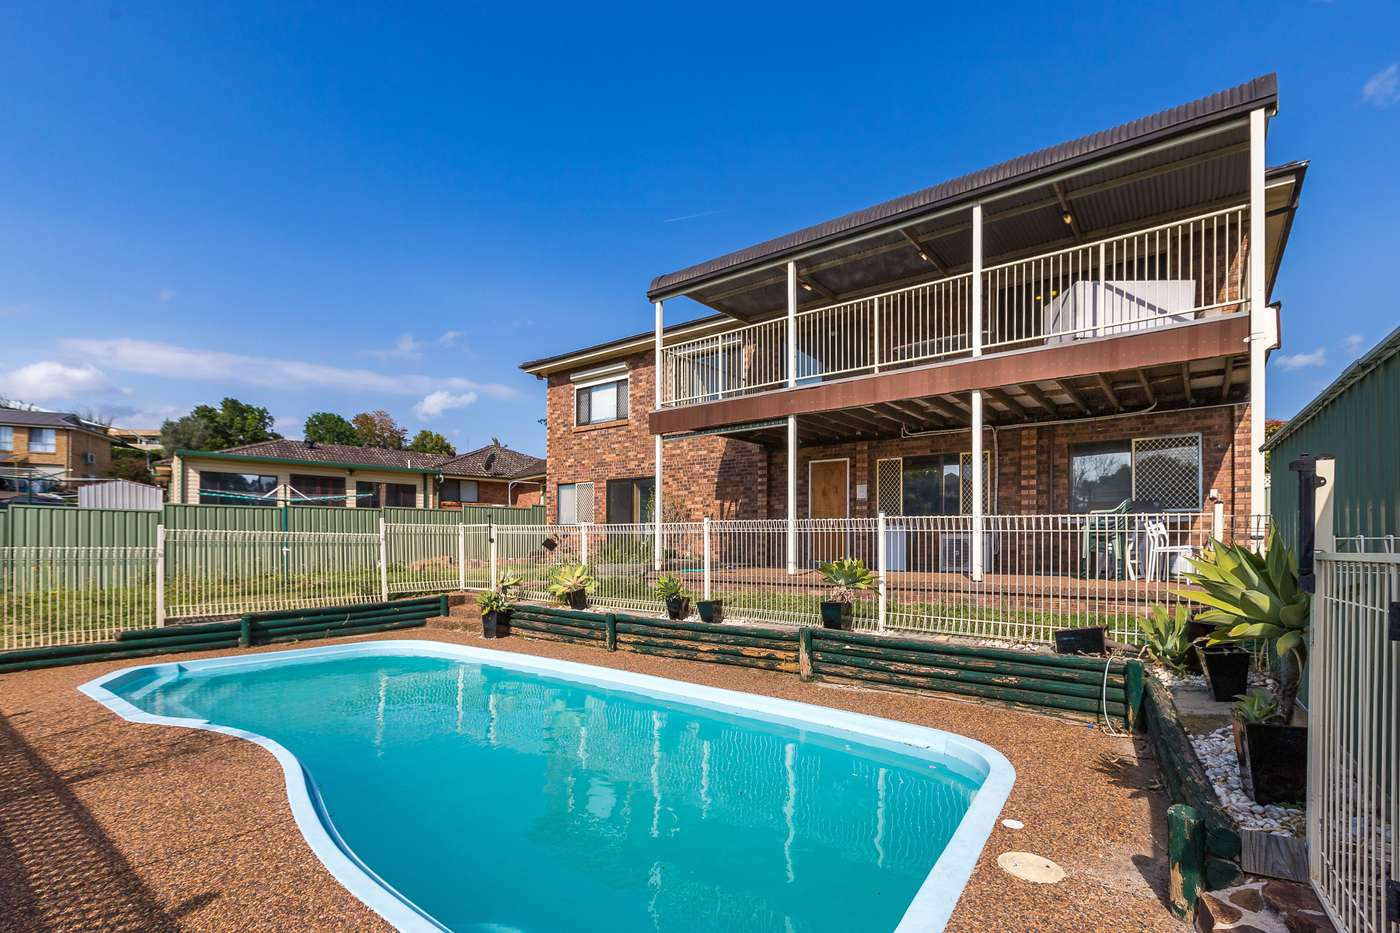 Main view of Homely house listing, 77 Alton Road, Raymond Terrace, NSW 2324